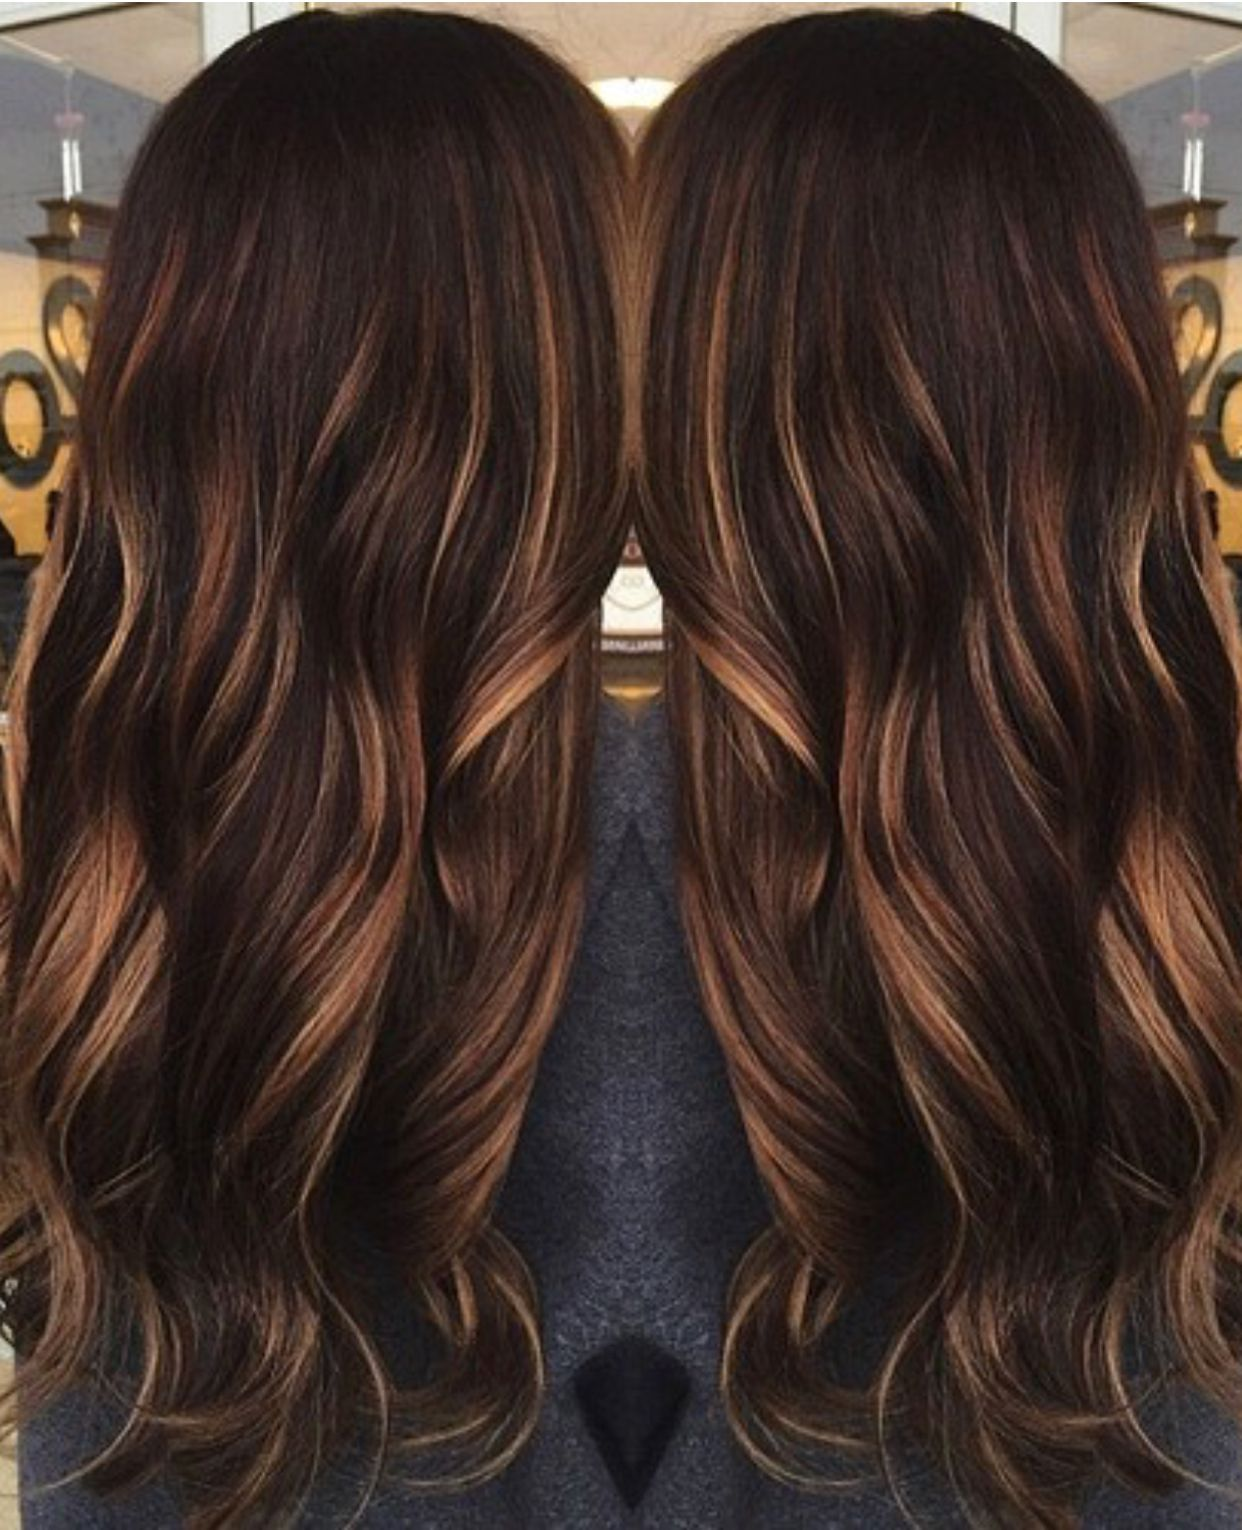 Pin by Paige Allison on Hair   Boliage hair, Balayage straight ...